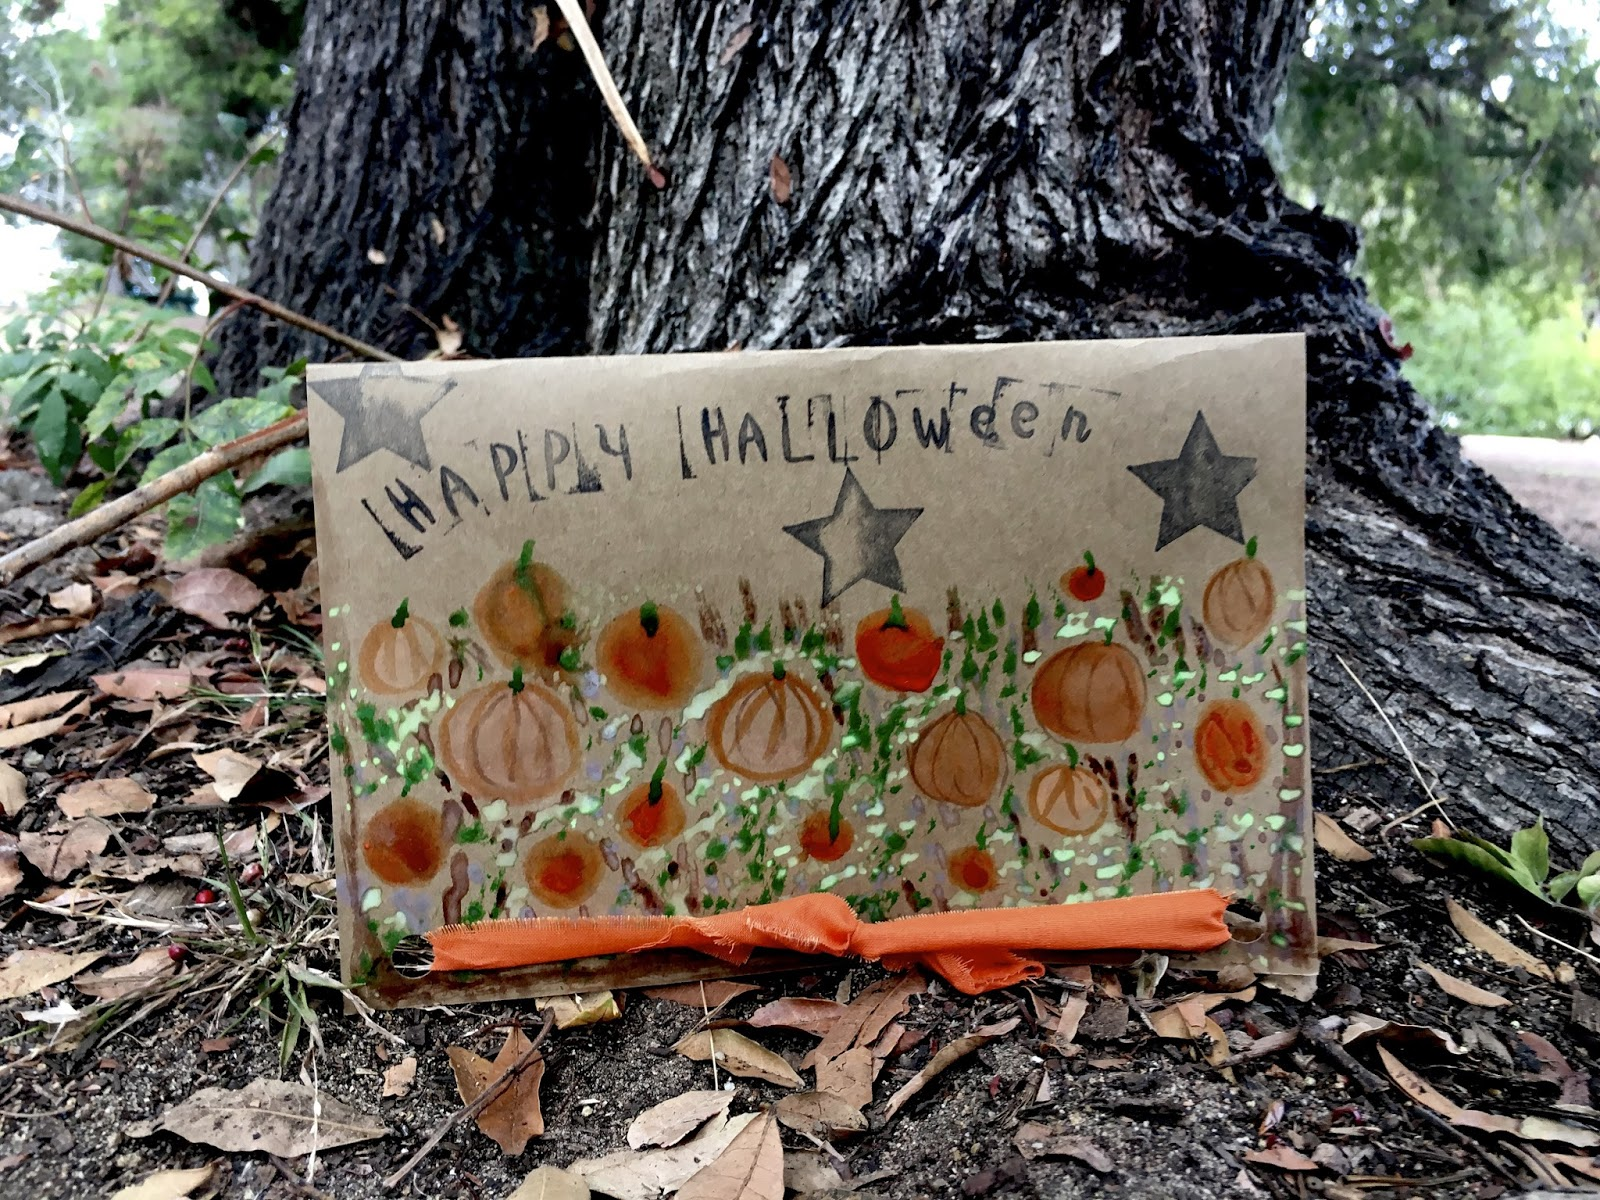 zoe la mona very simple halloween kid crafts countdown to halloween bookmark a halloween or halloween inspired story each night until halloween itacutes a nice way to make the one magical night last